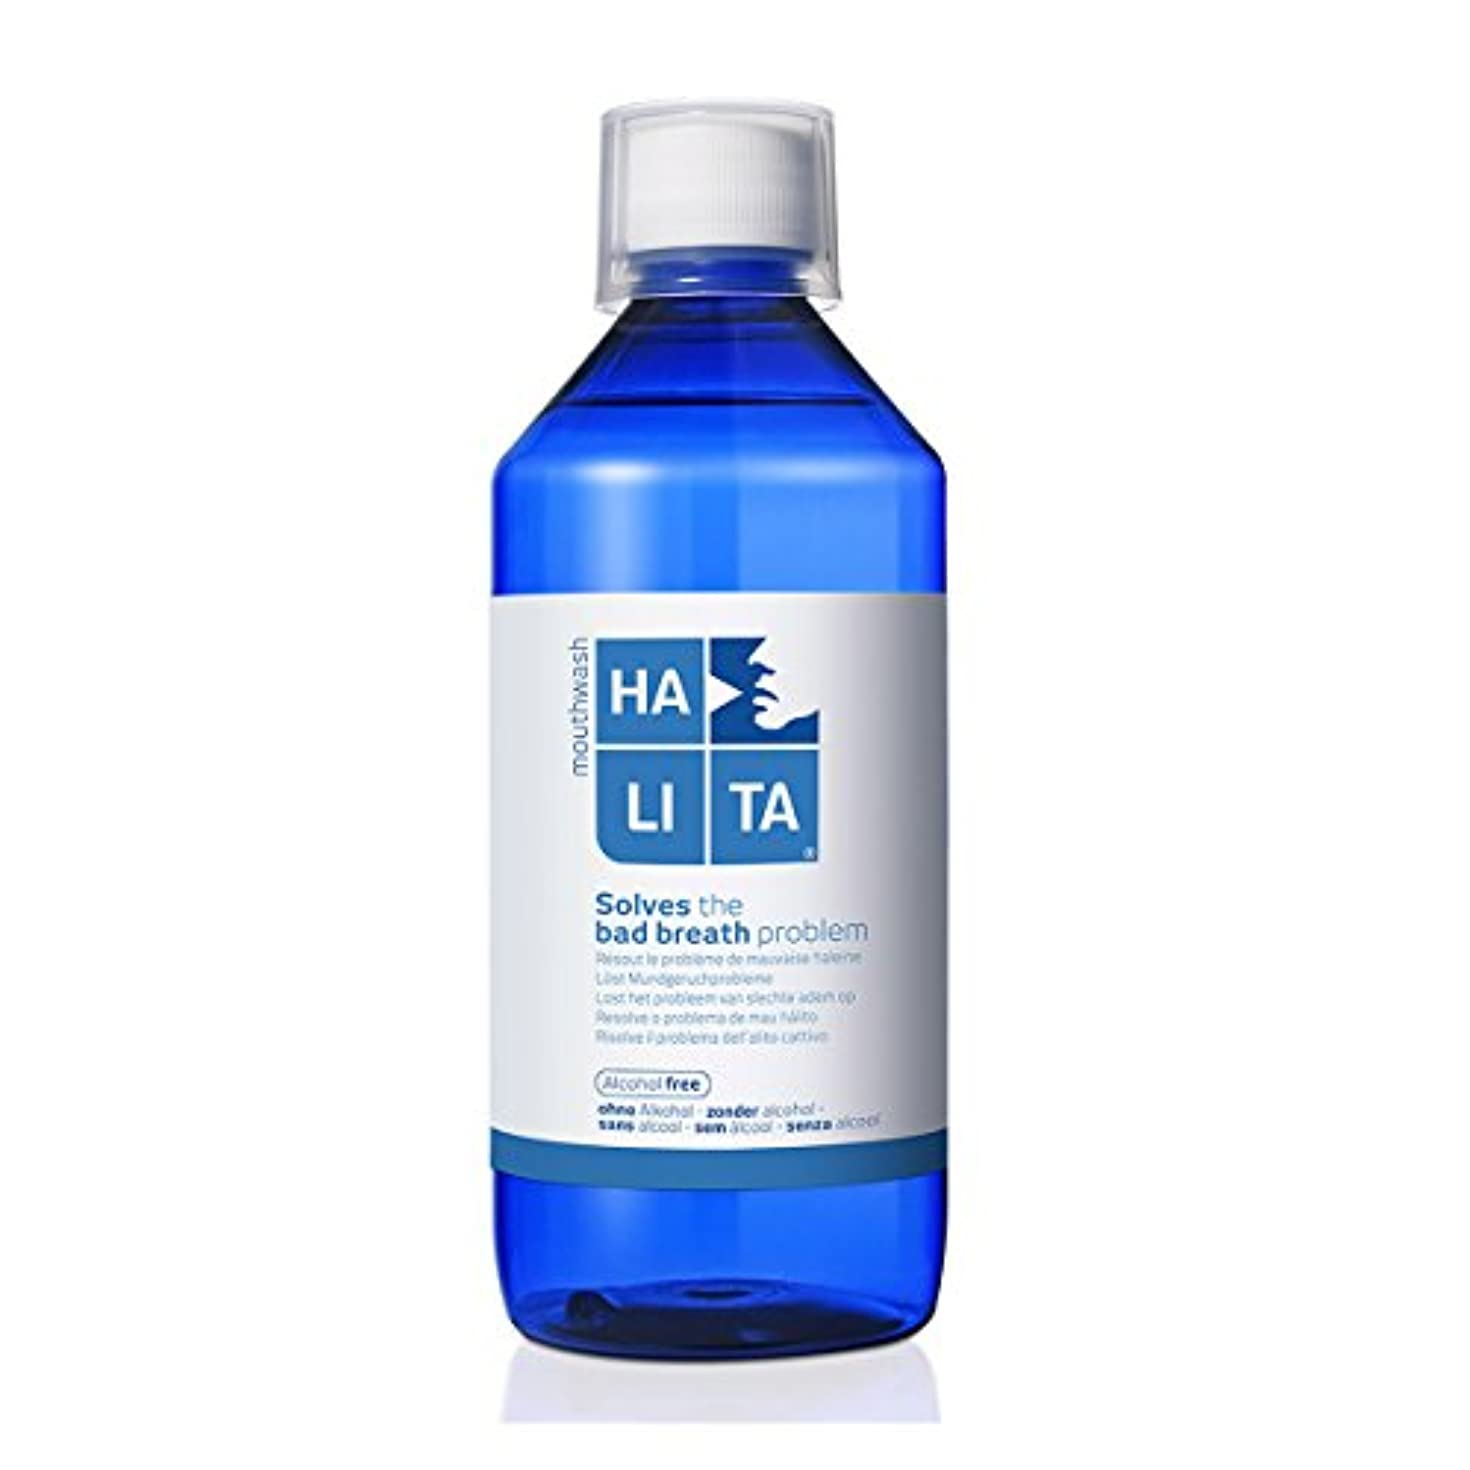 Halita Bad Breath Mouthwash 500ml [並行輸入品]